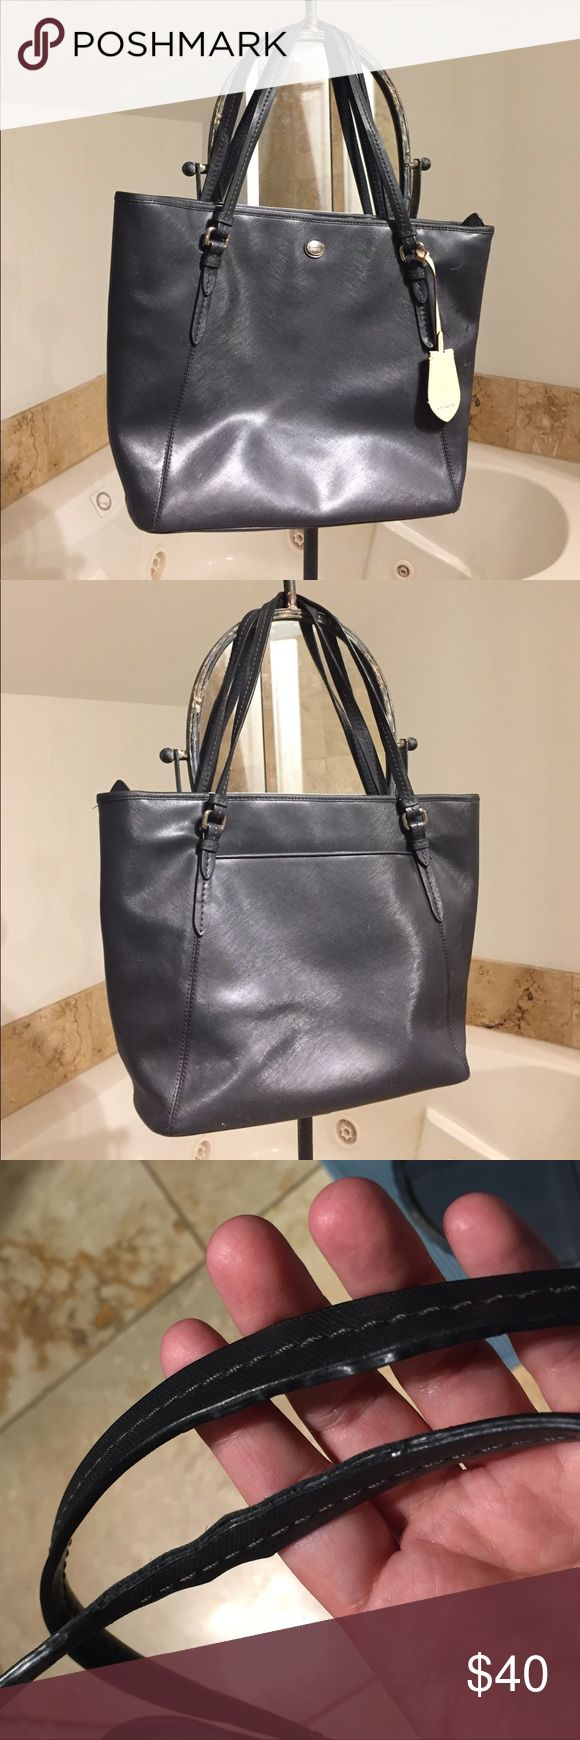 Black Coach Purse Black Coach Purse. Used heavily, see pictures for obvious signs of wear on straps. It is slim but still large enough to hold an iPad so it went to work with me a bunch and can use some cleaning. Otherwise good condition. Smoke and pet free home. Coach Bags Shoulder Bags